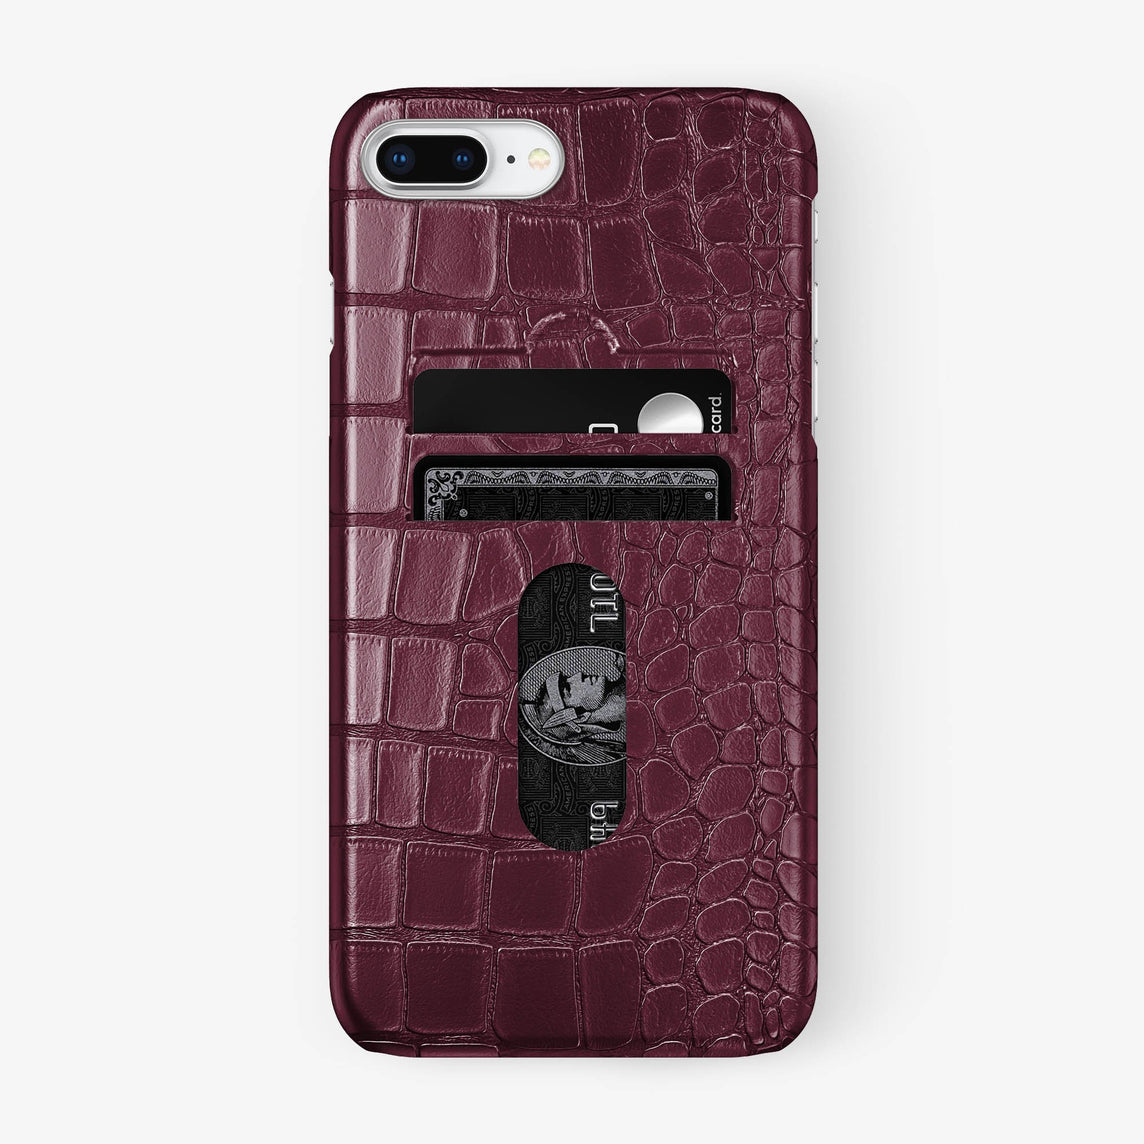 Alligator Card Holder Case iPhone 7/8 Plus | Burgundy - Stainless Steel - Hadoro